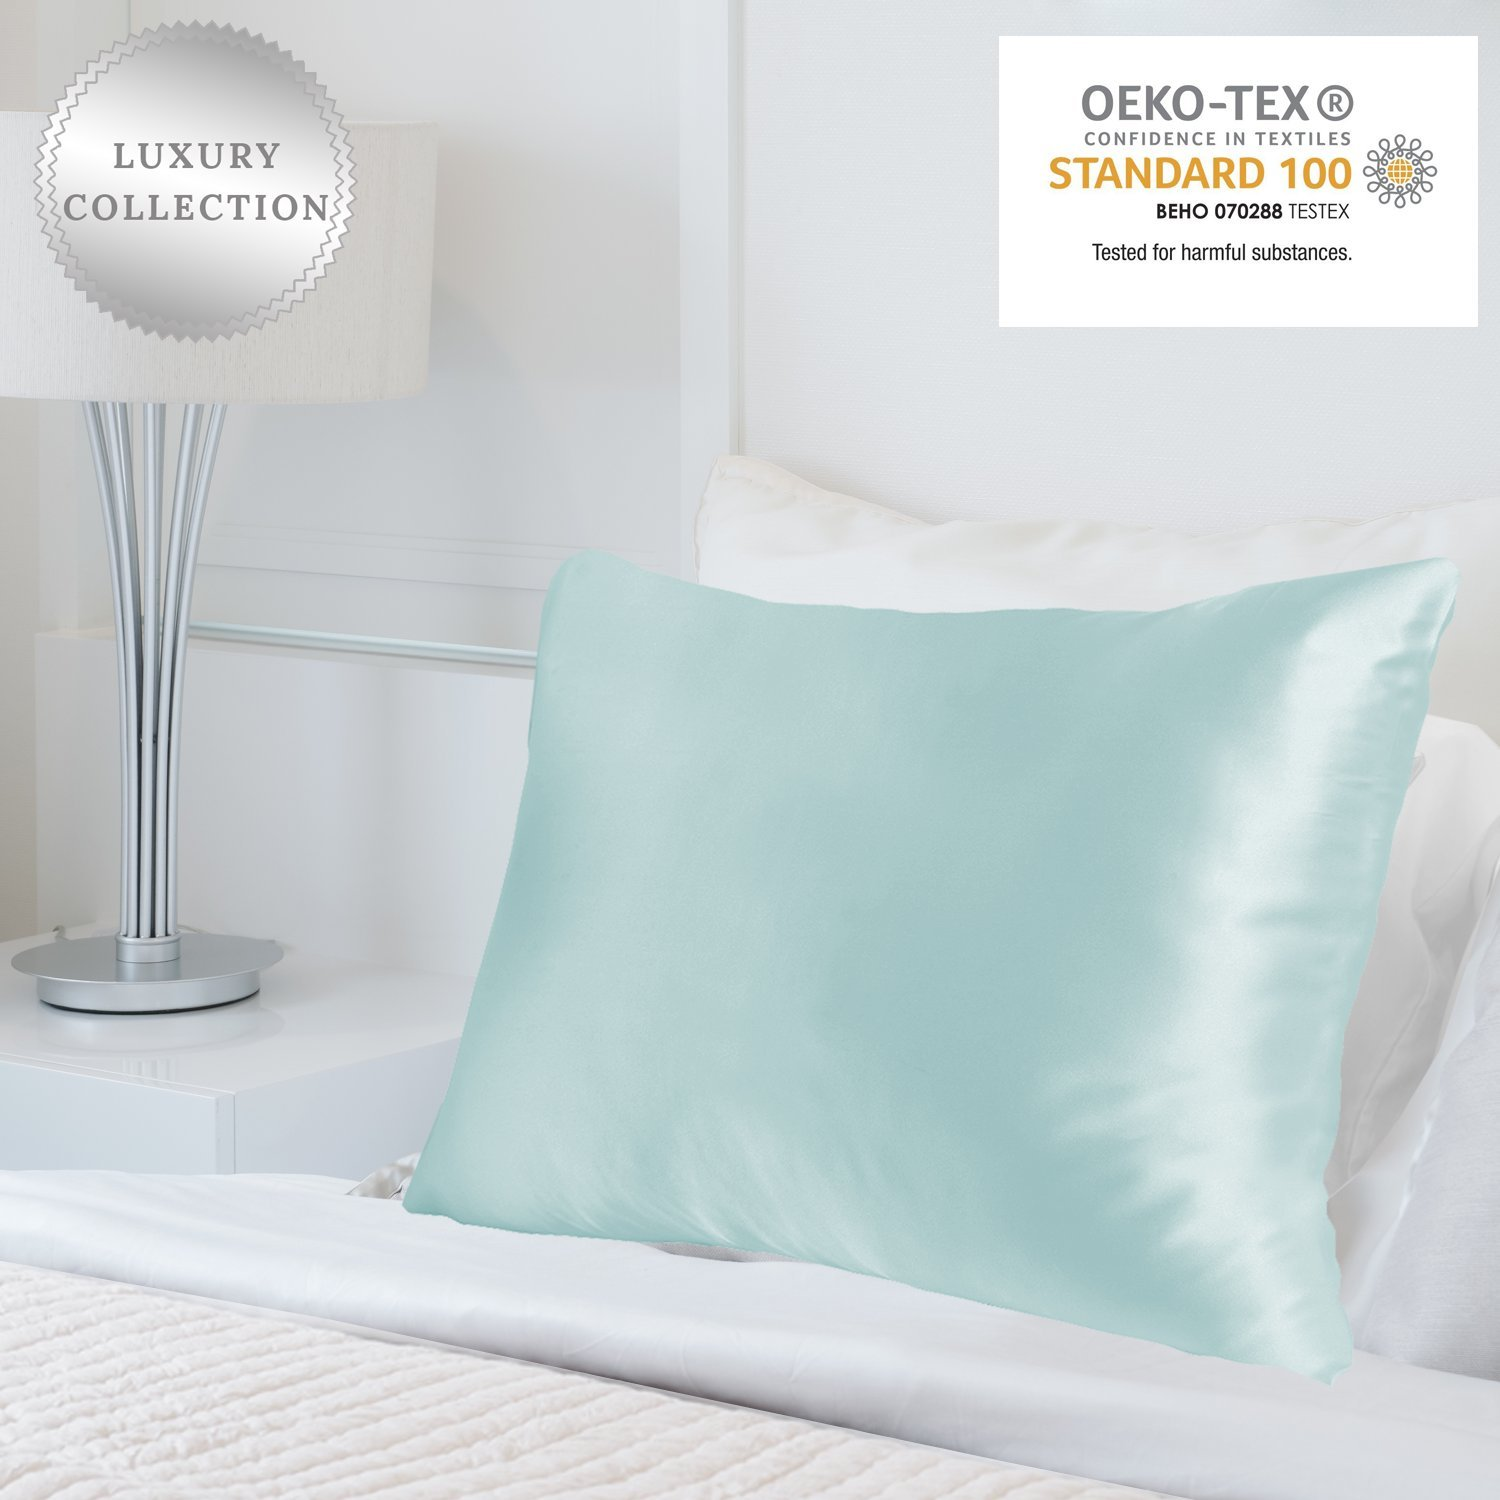 MYK 100% Natural Mulberry Silk Pillowcase, 25 Momme for Hair and Skin Care, Oeko-TEX, Hypoallergenic, Cooling, Queen, Light Blue